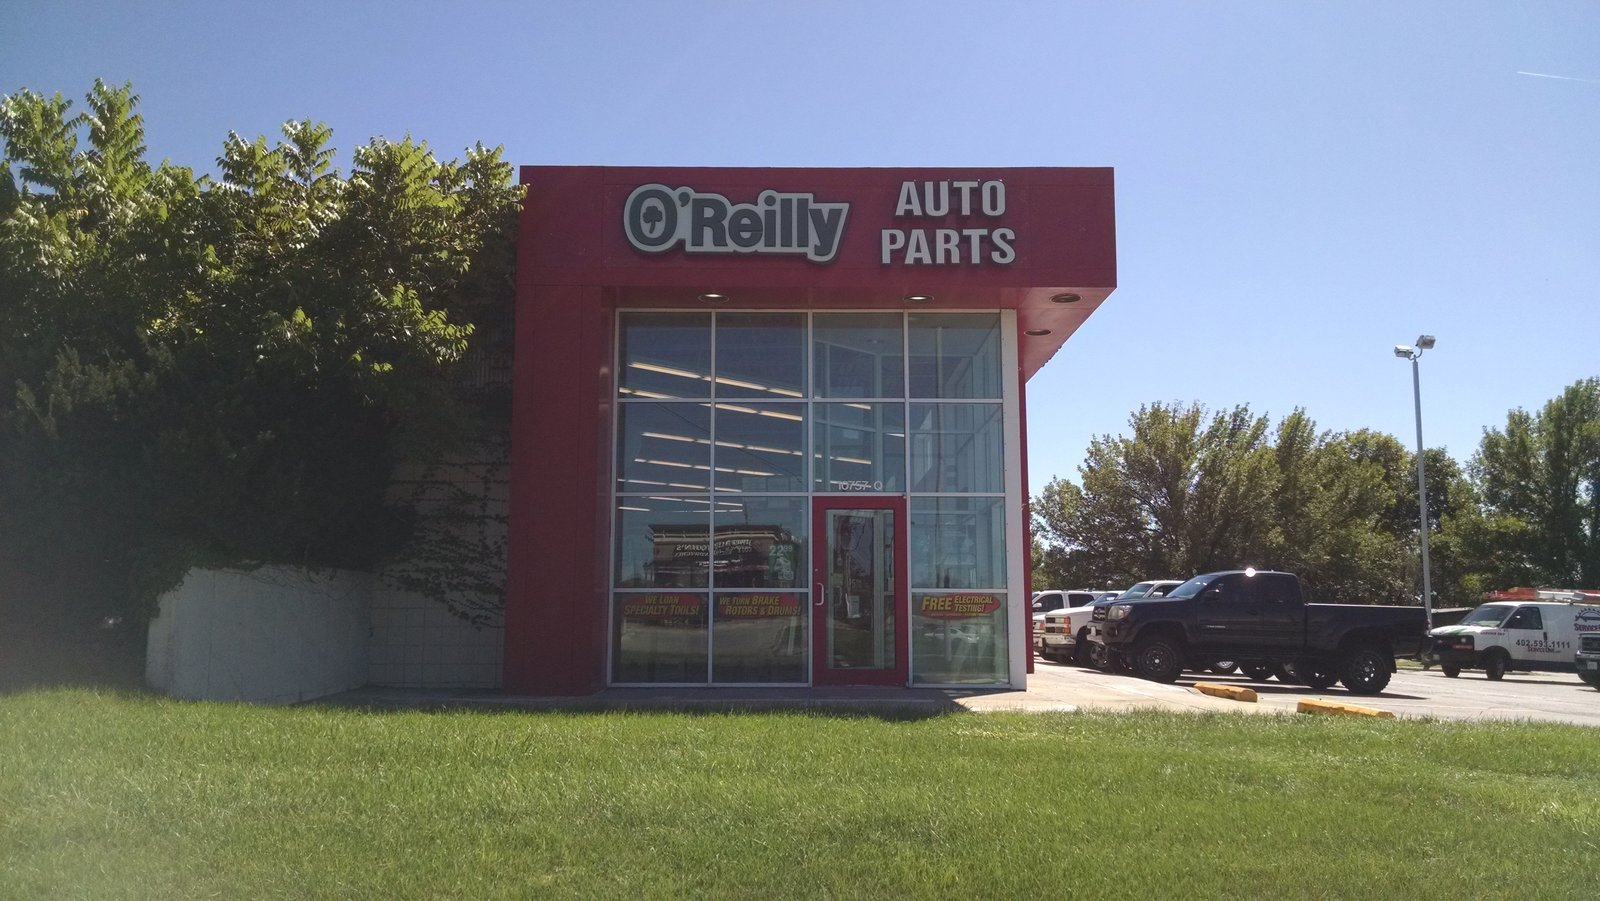 O'Reilly Auto Parts in Omaha, NE 68127 - ChamberofCommerce.com | 1600 x 901 jpeg 292kB